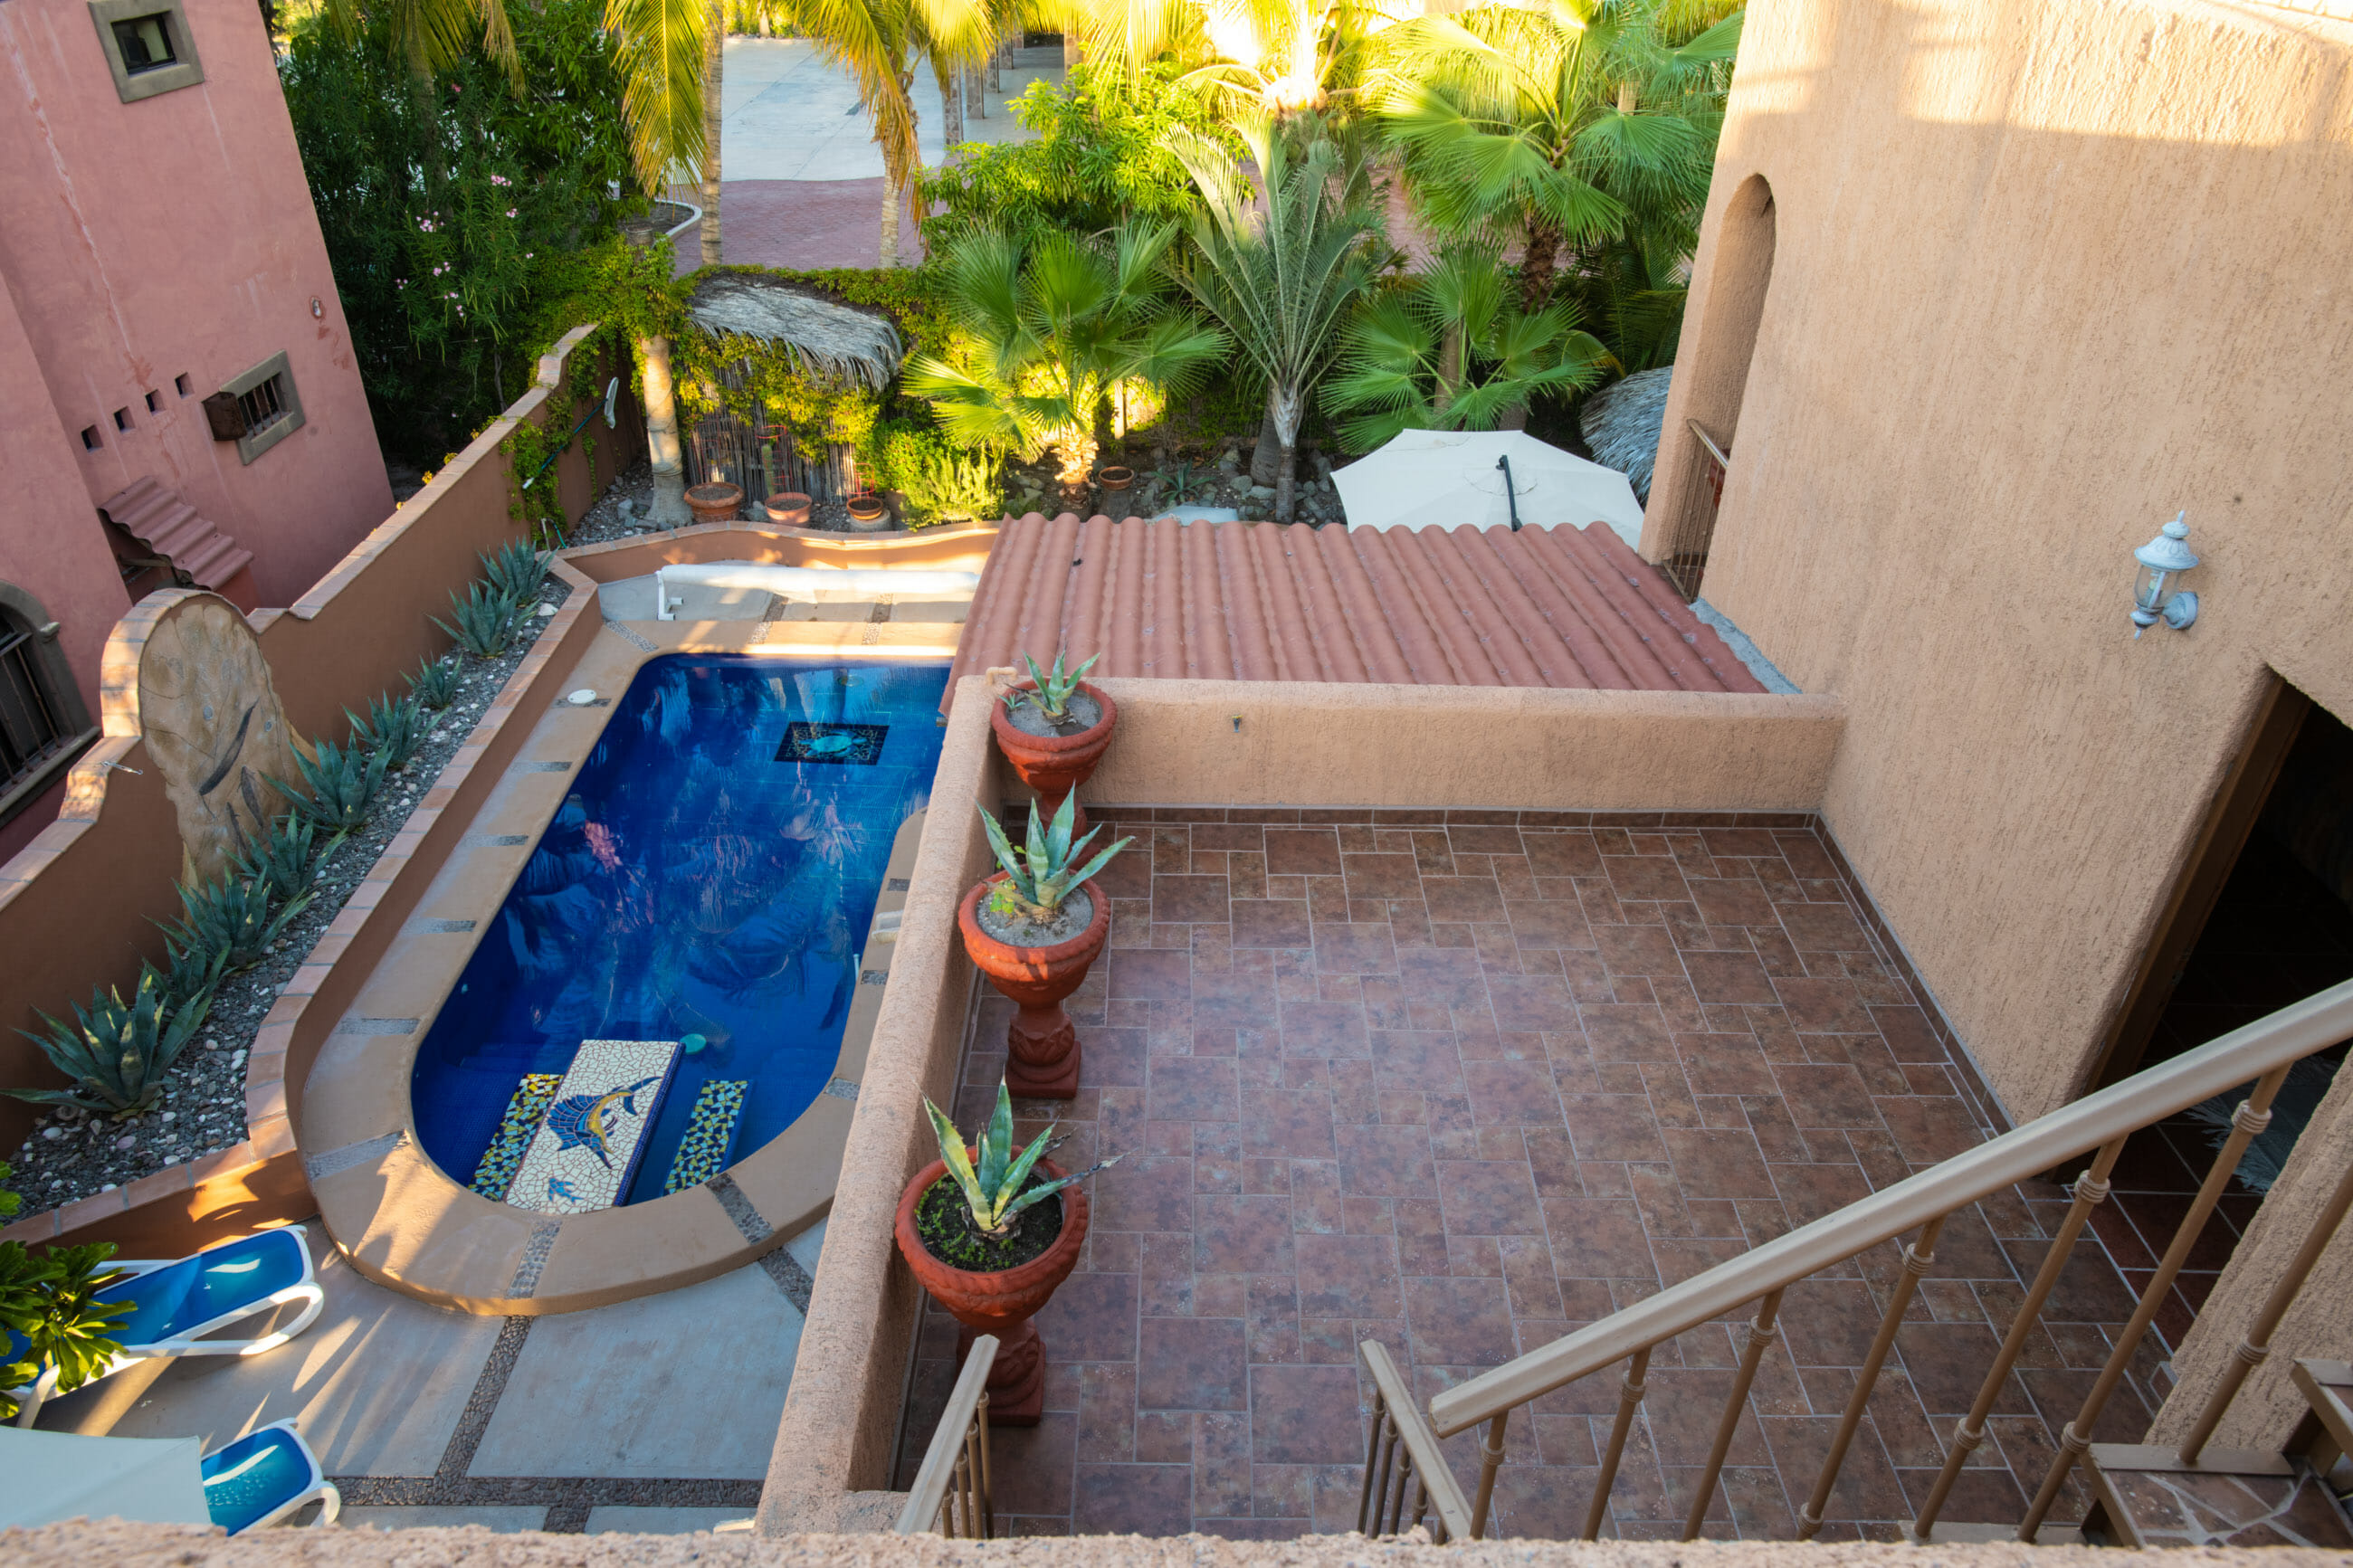 288 Davis St Loreto, Baja California Sur Mexico: Second floor terrace and back yard